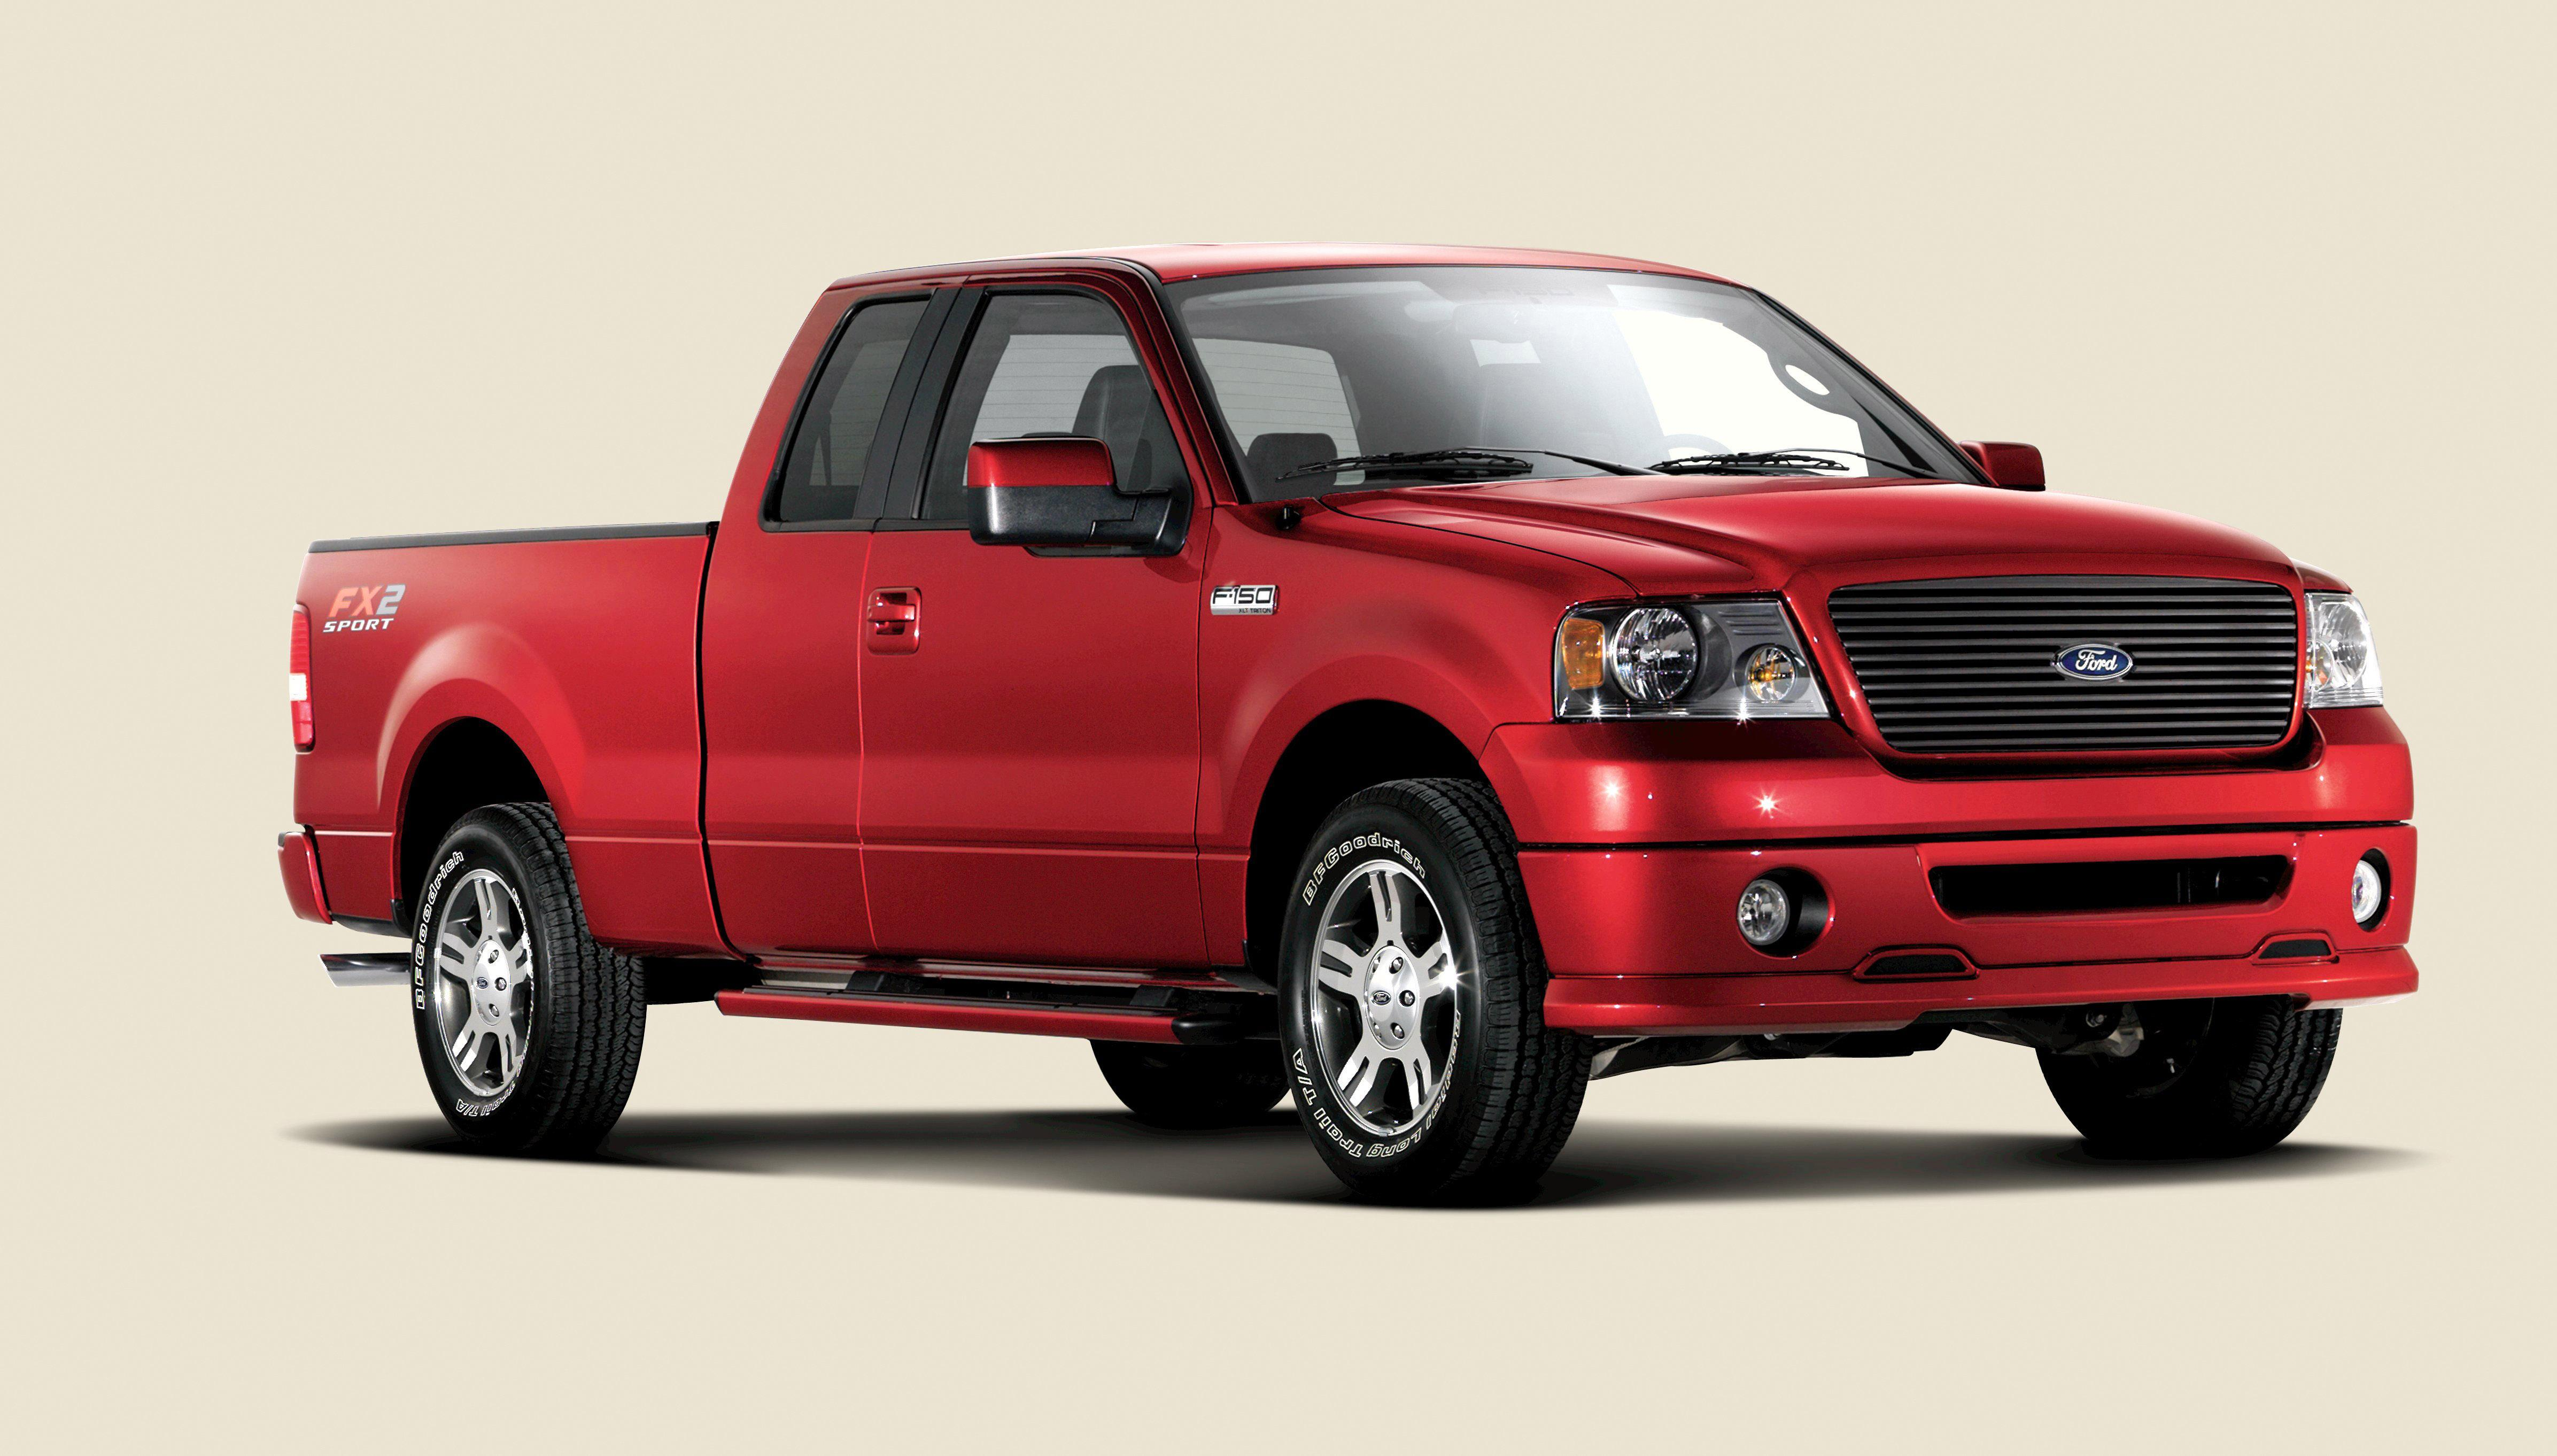 2007 Ford F-150 | Top Speed